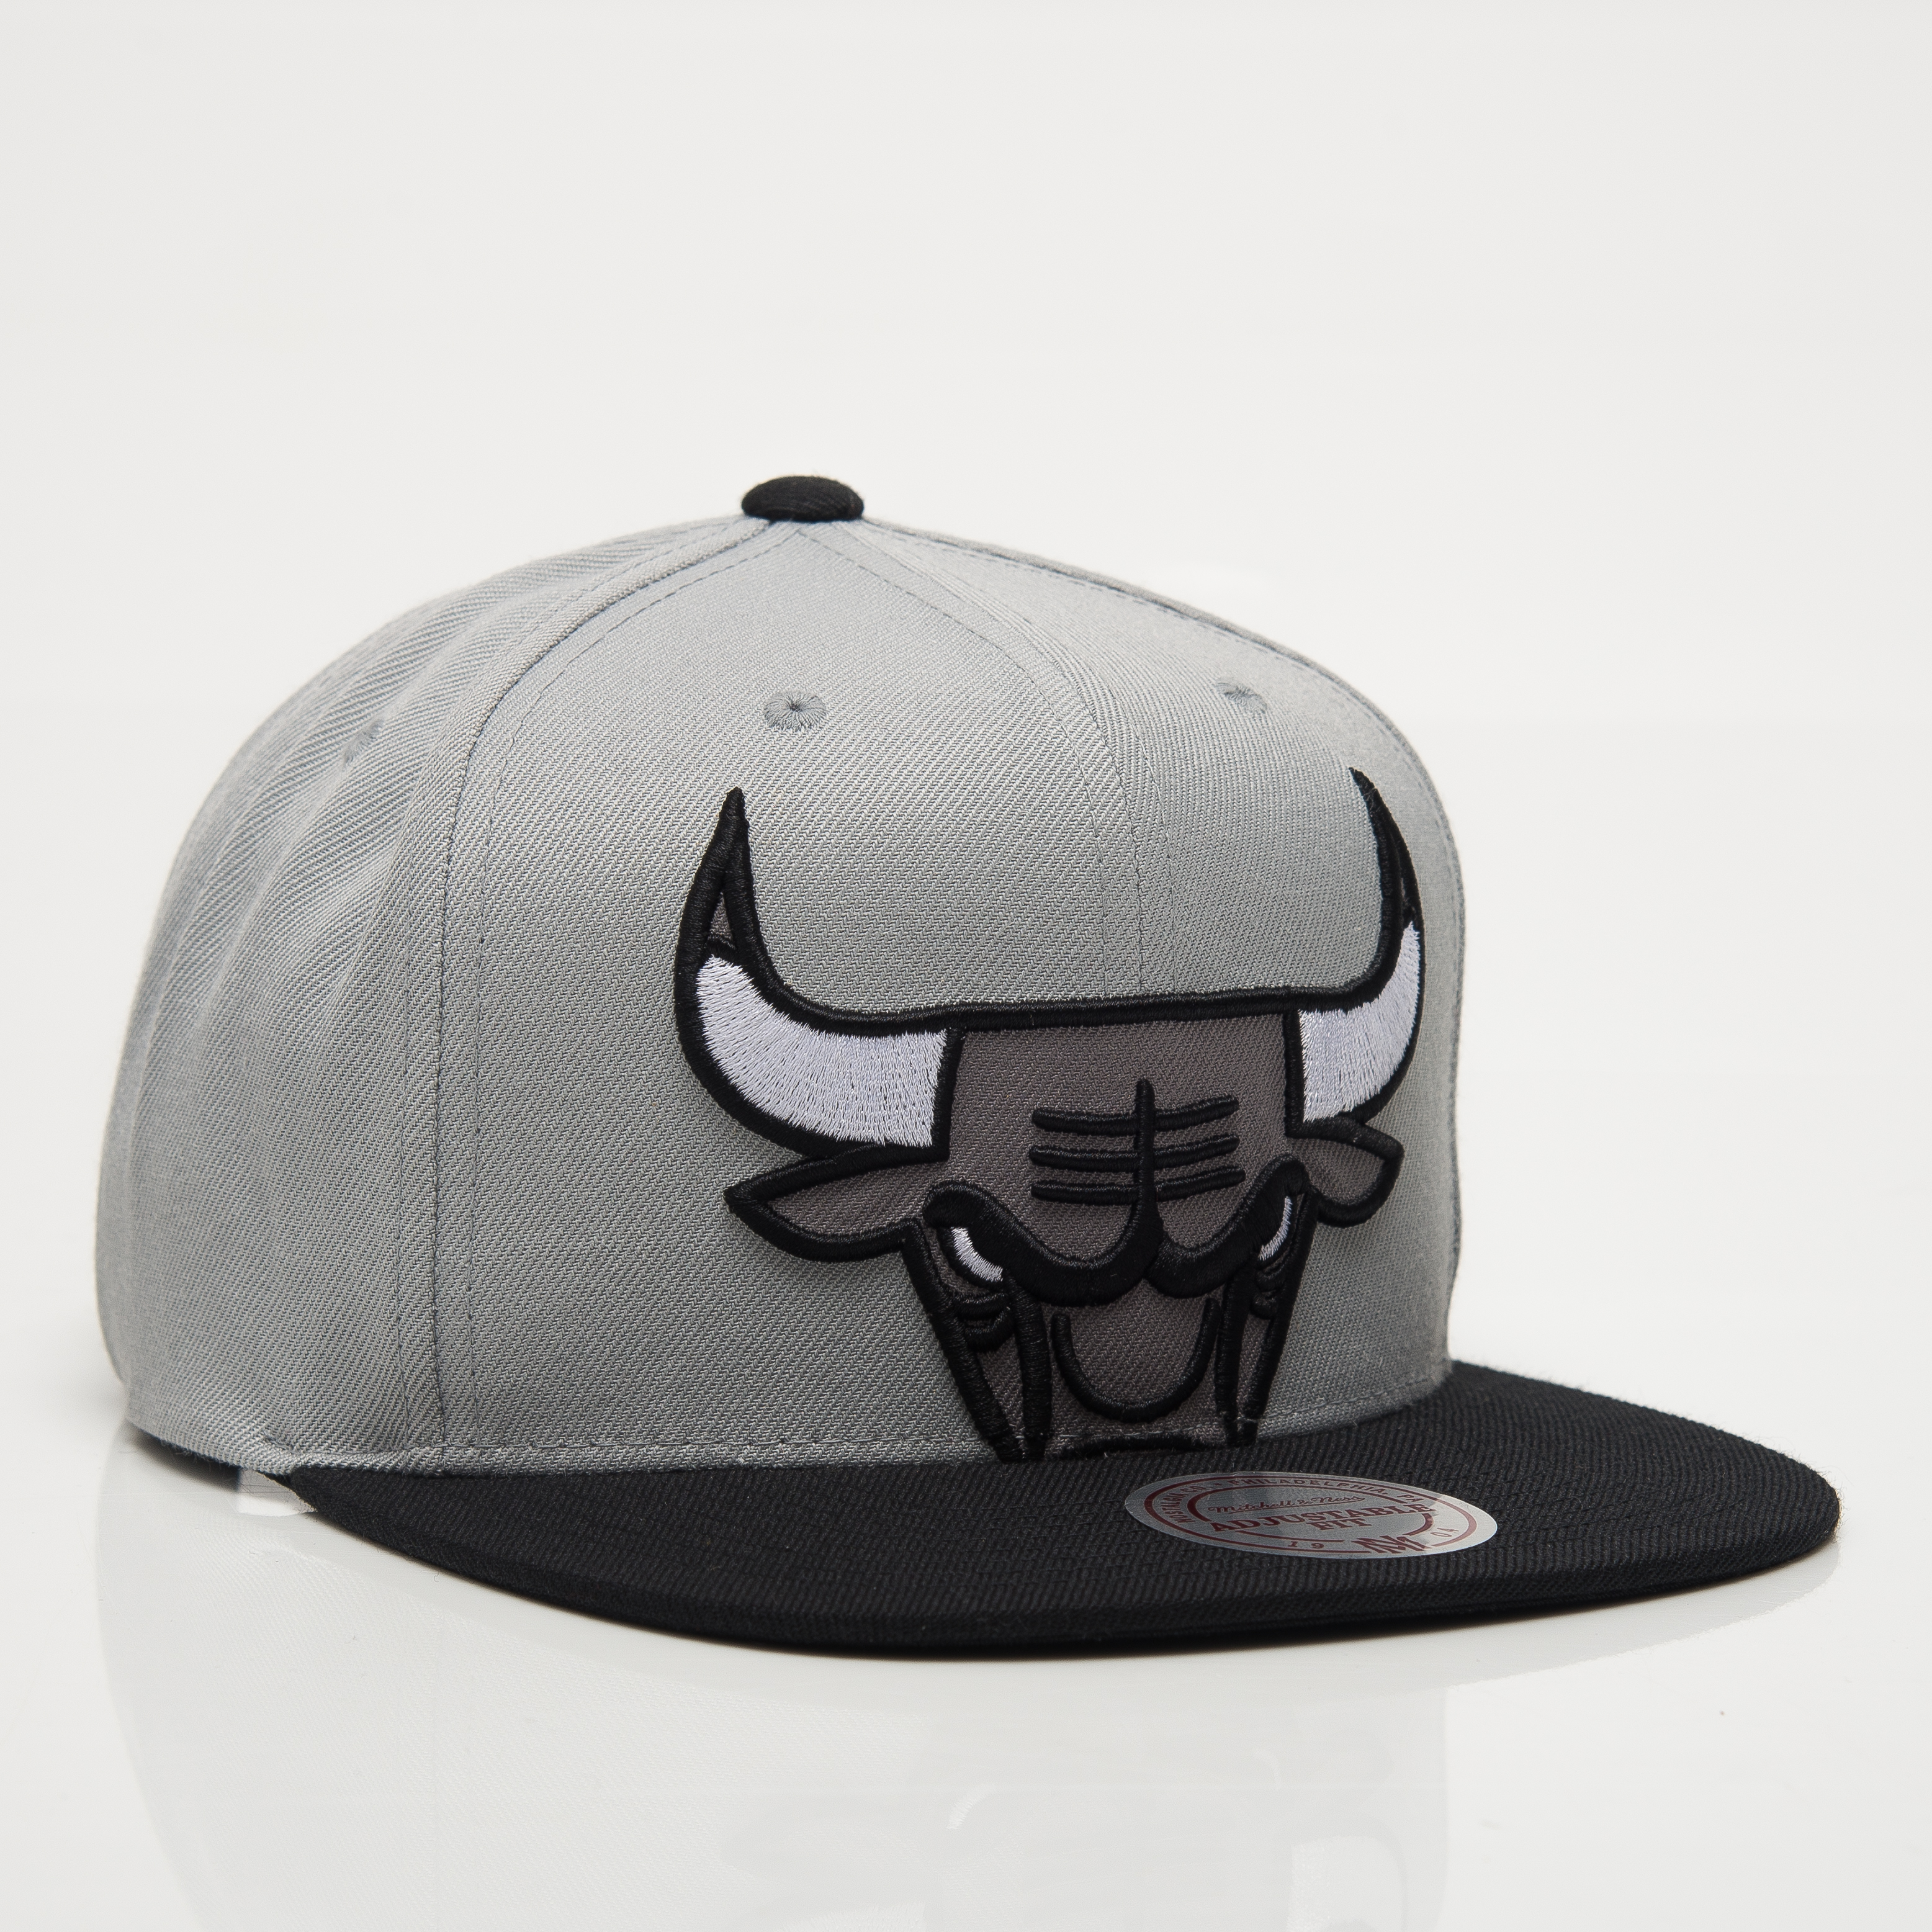 info for 5d3e4 ead0b Mitchell   Ness NBA Chicago Bulls Cropped XL Snapback Cap - NBA Shop  Chicago Bulls Merchandise - Superfanas.lt